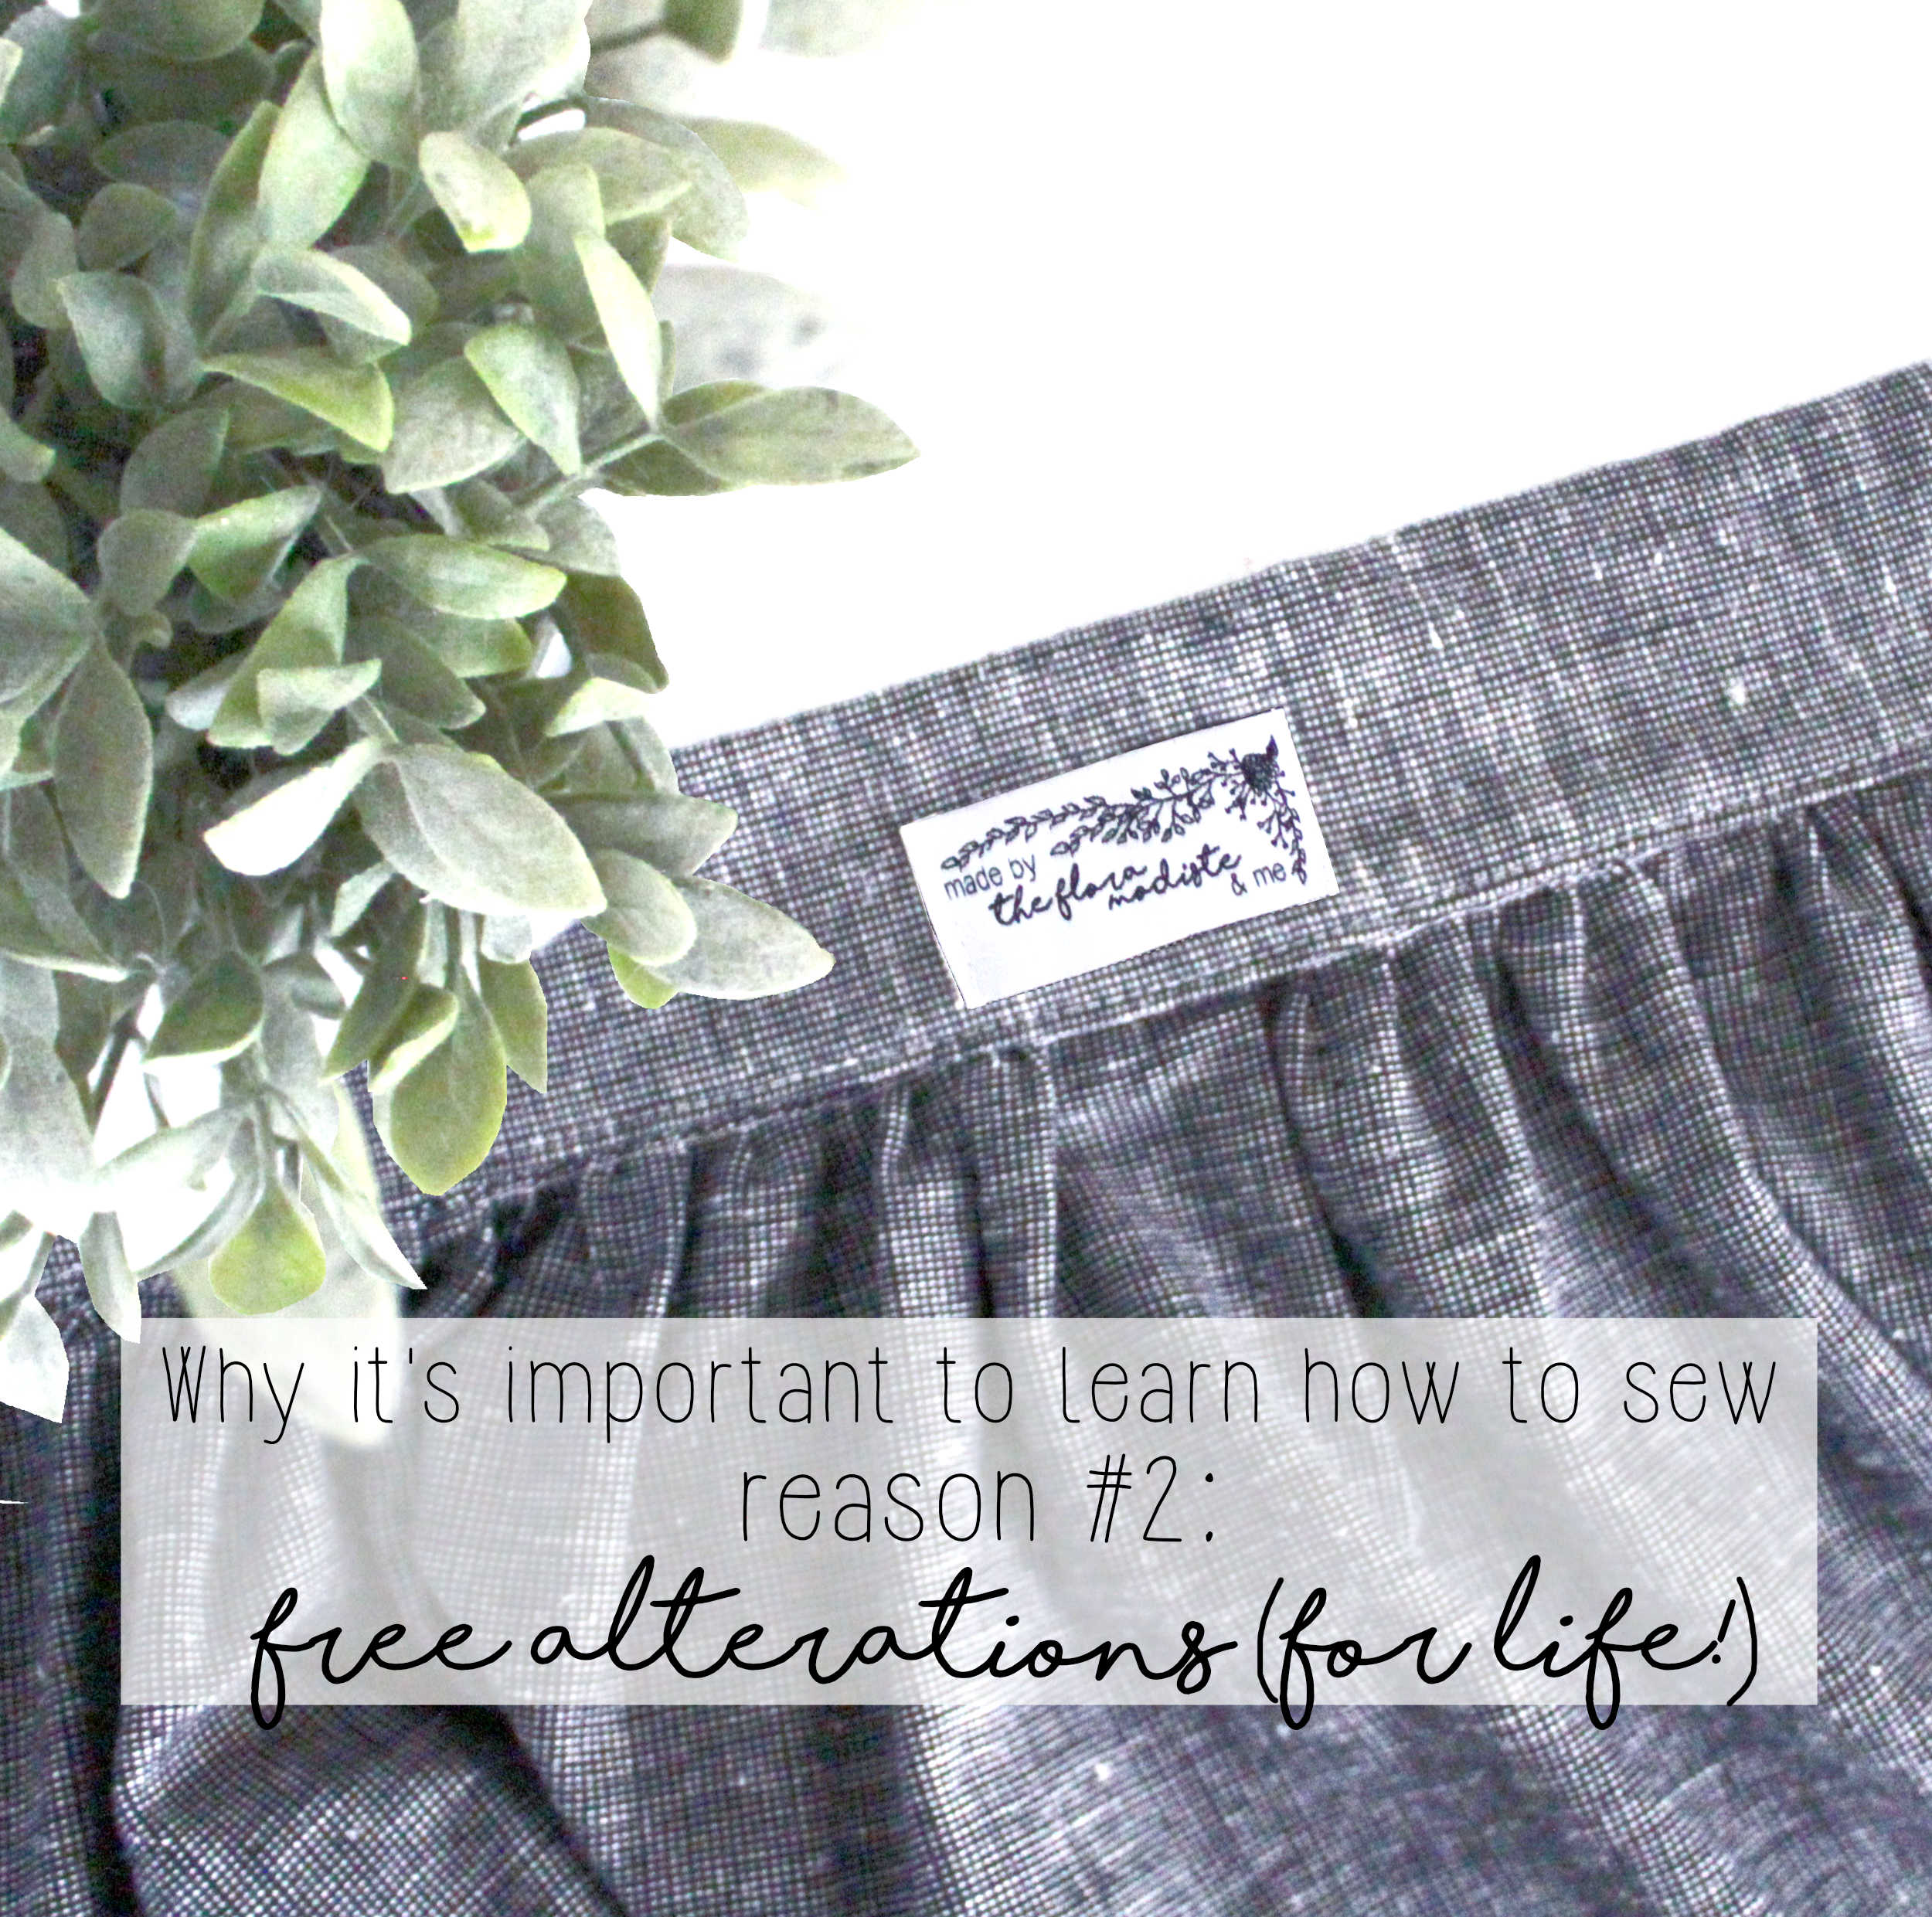 Why It's Important To Learn How To Sew: Reason #2